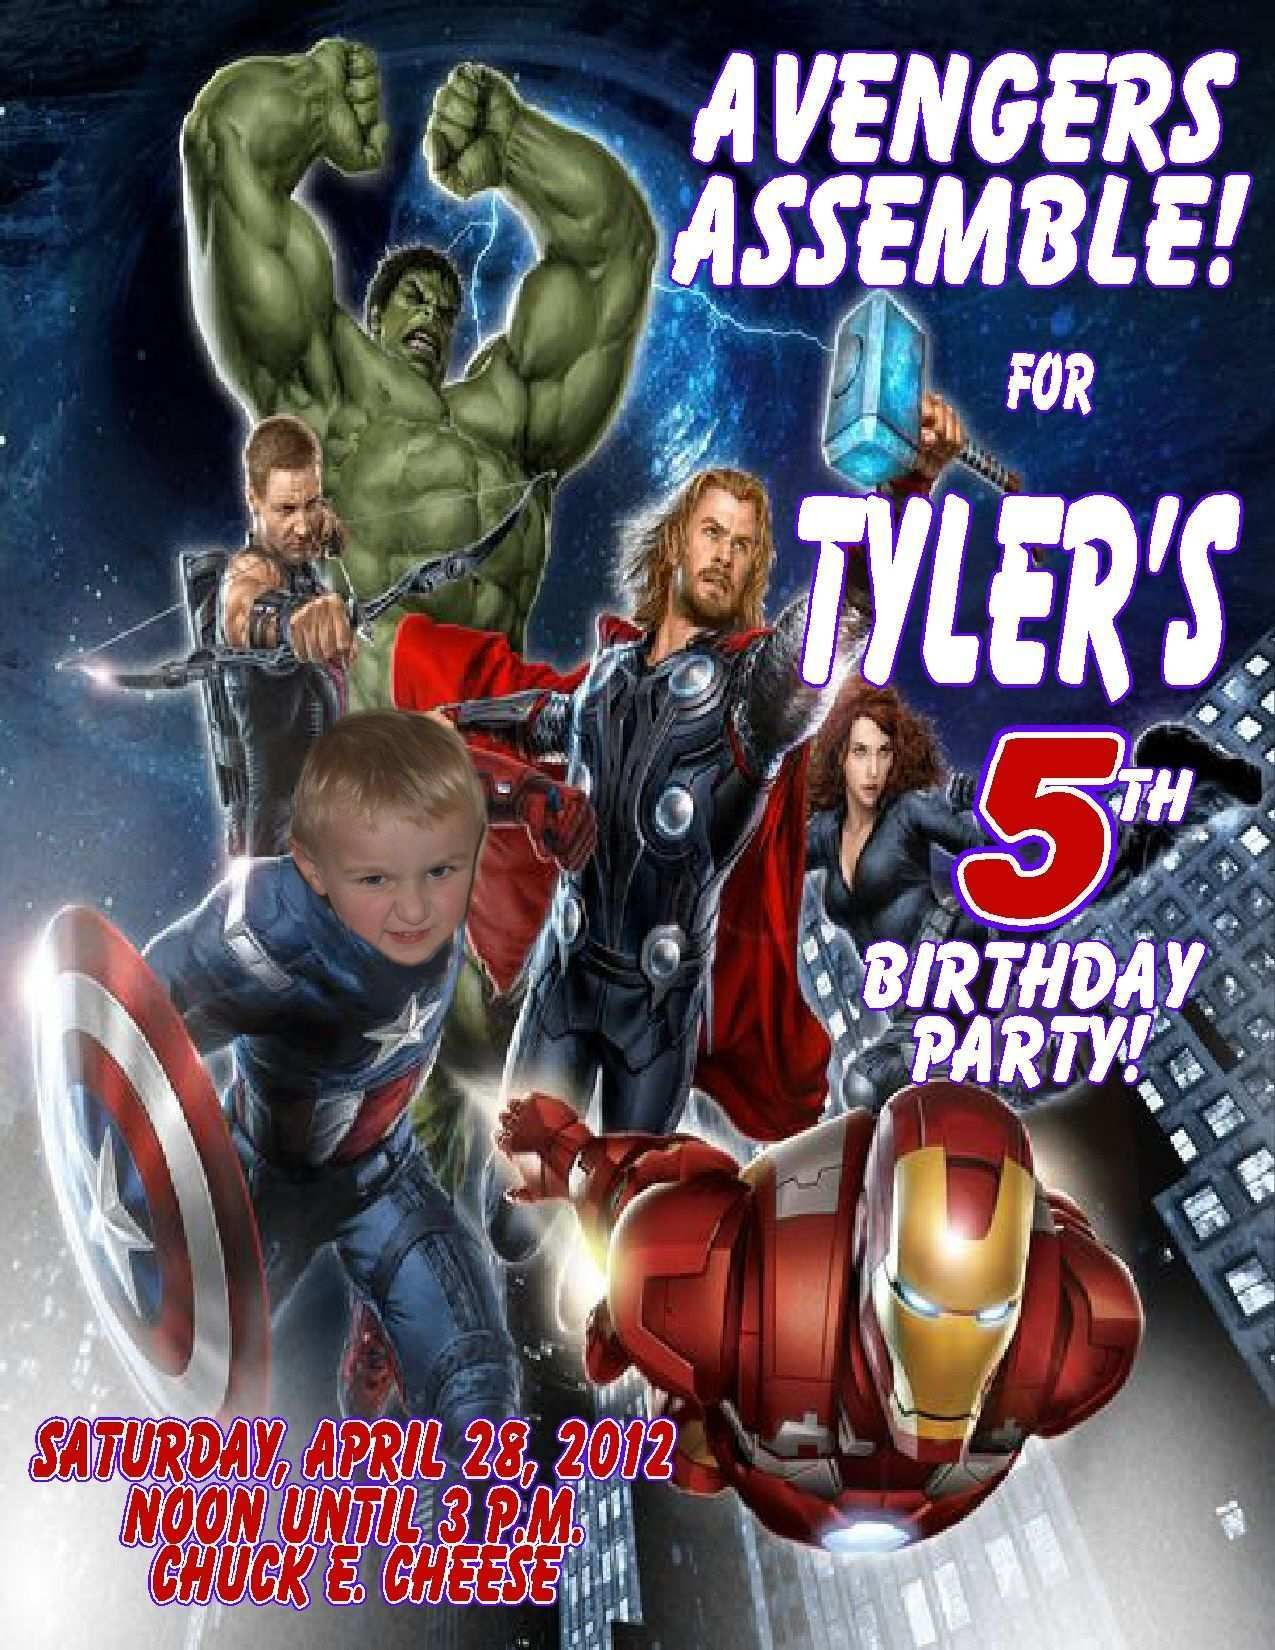 12 The Best Avengers Party Invitation Template Download With With Regard To Avengers Bir Photo Birthday Invitations Avengers Party Invitation Avengers Birthday